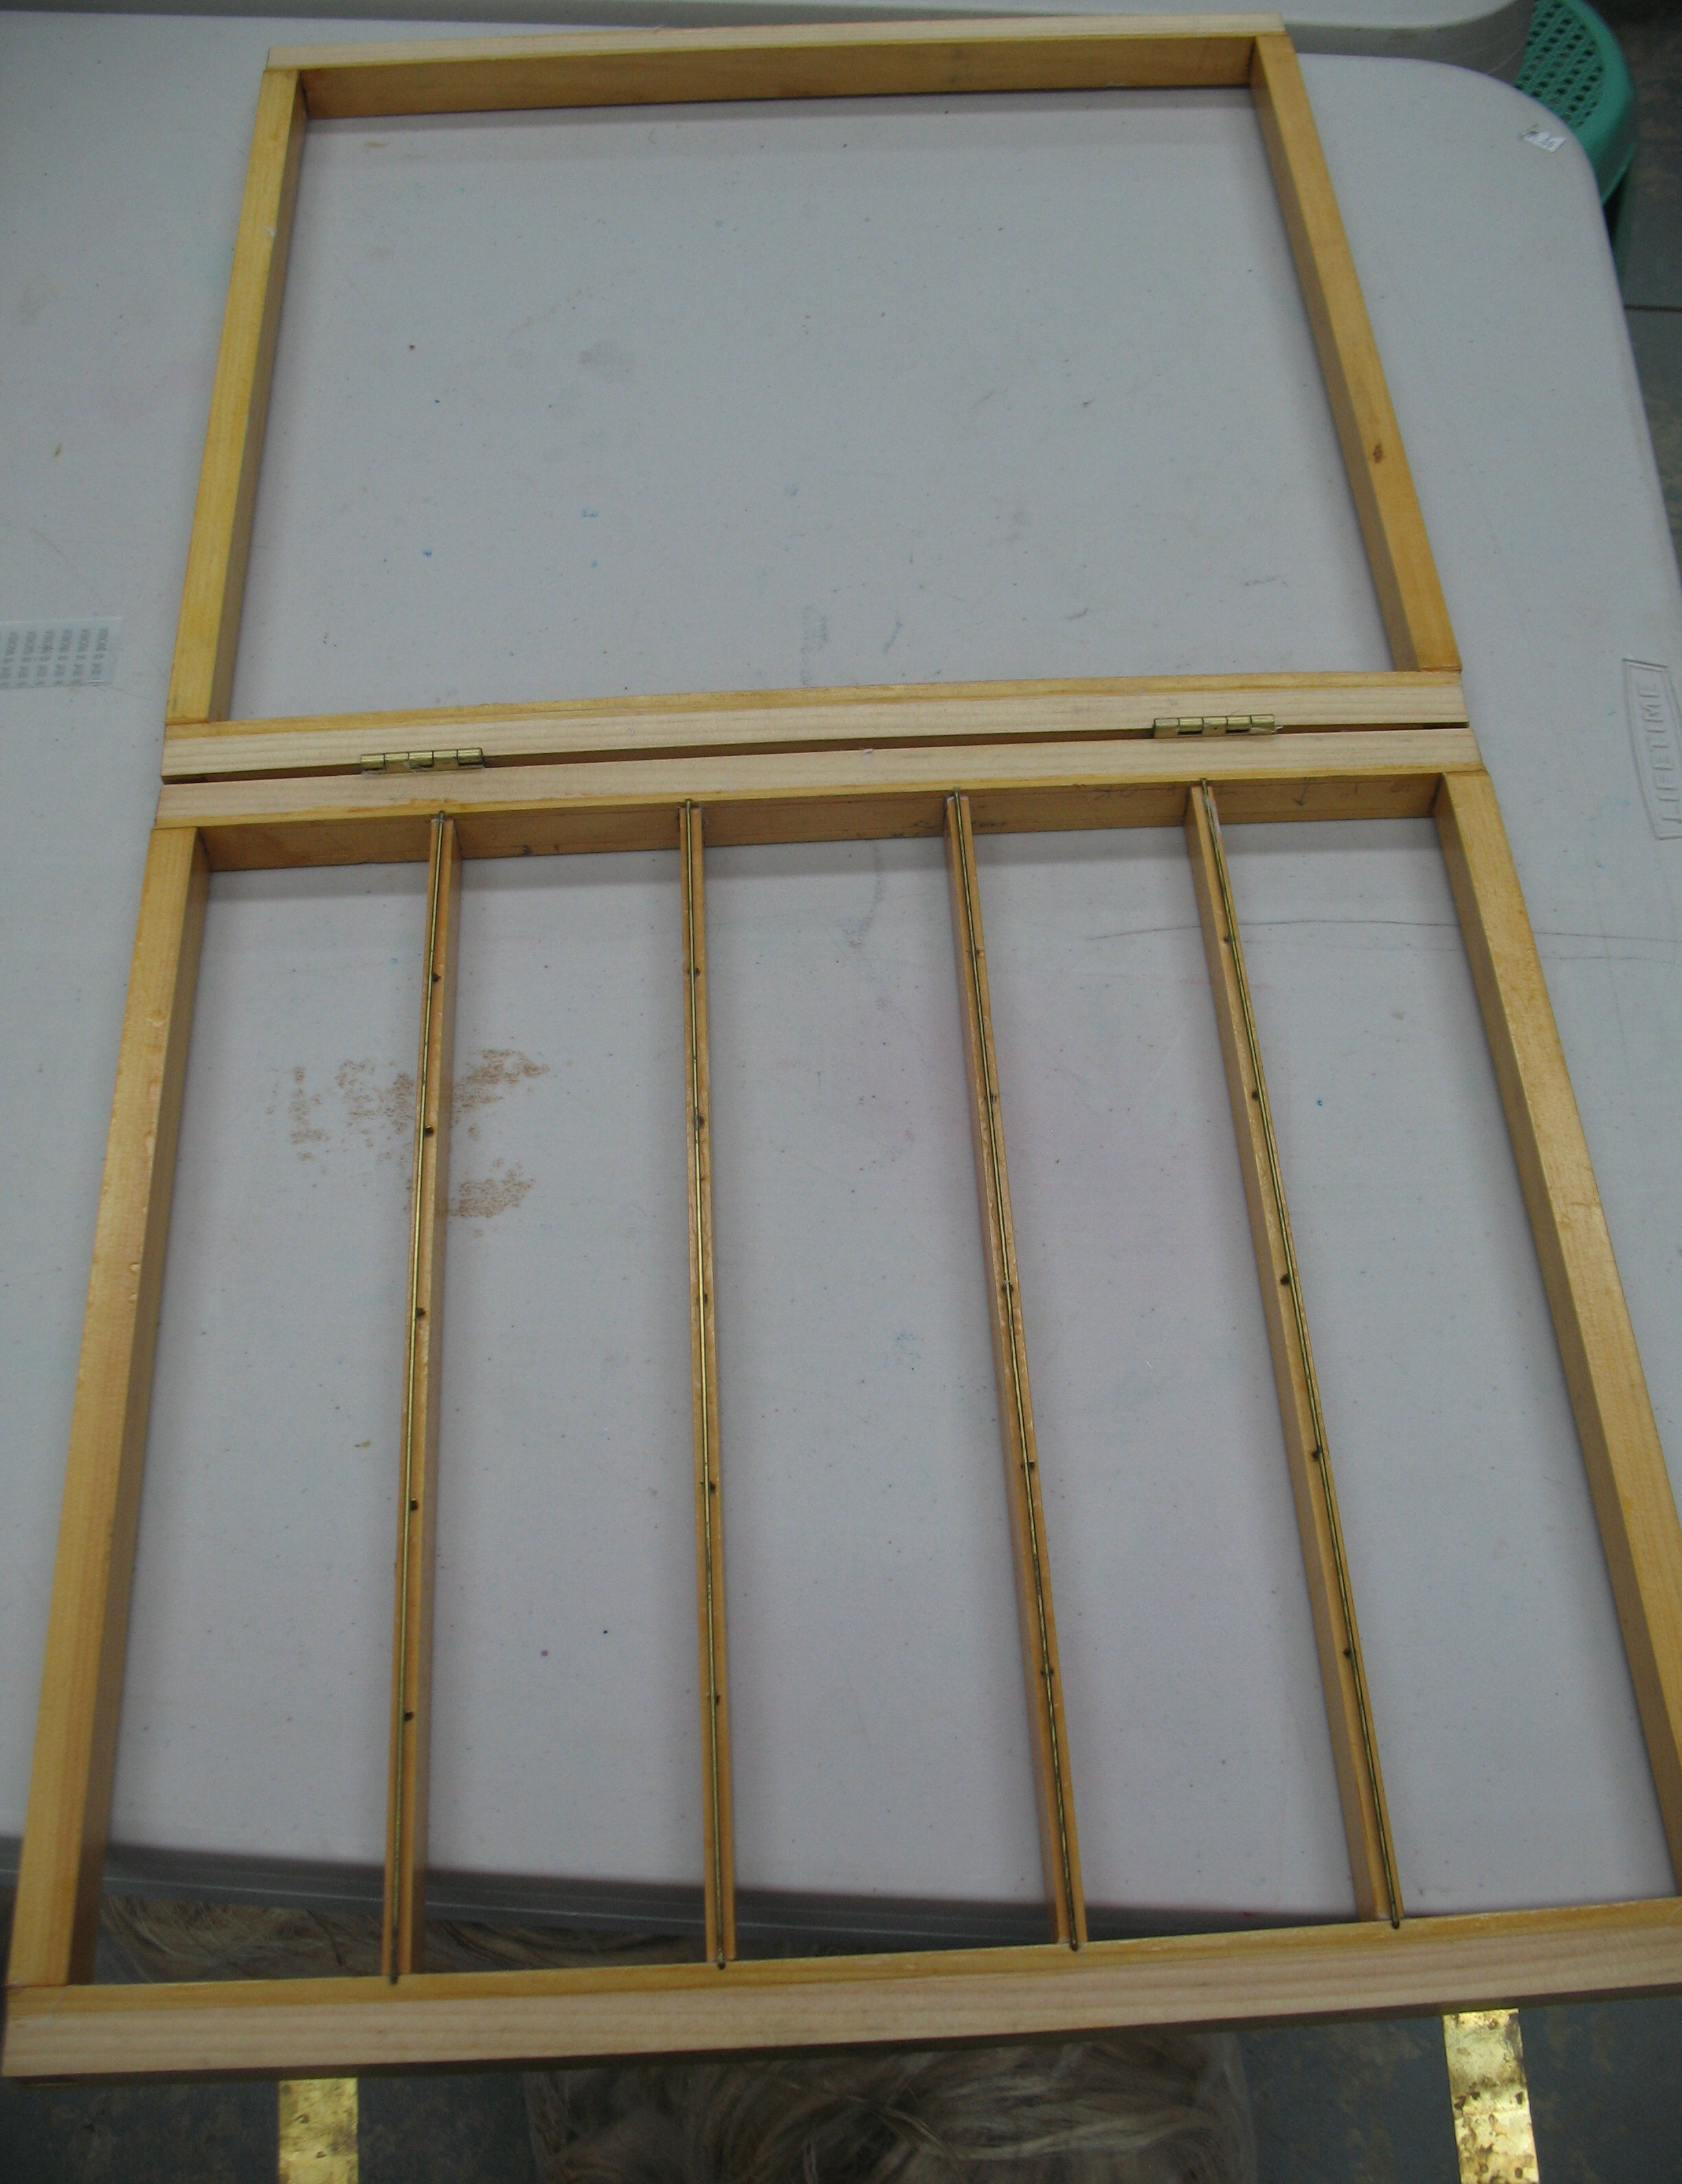 The keta, or deckle frame, shown here open, which supports the su and contains the liquid pulp during sheet formation